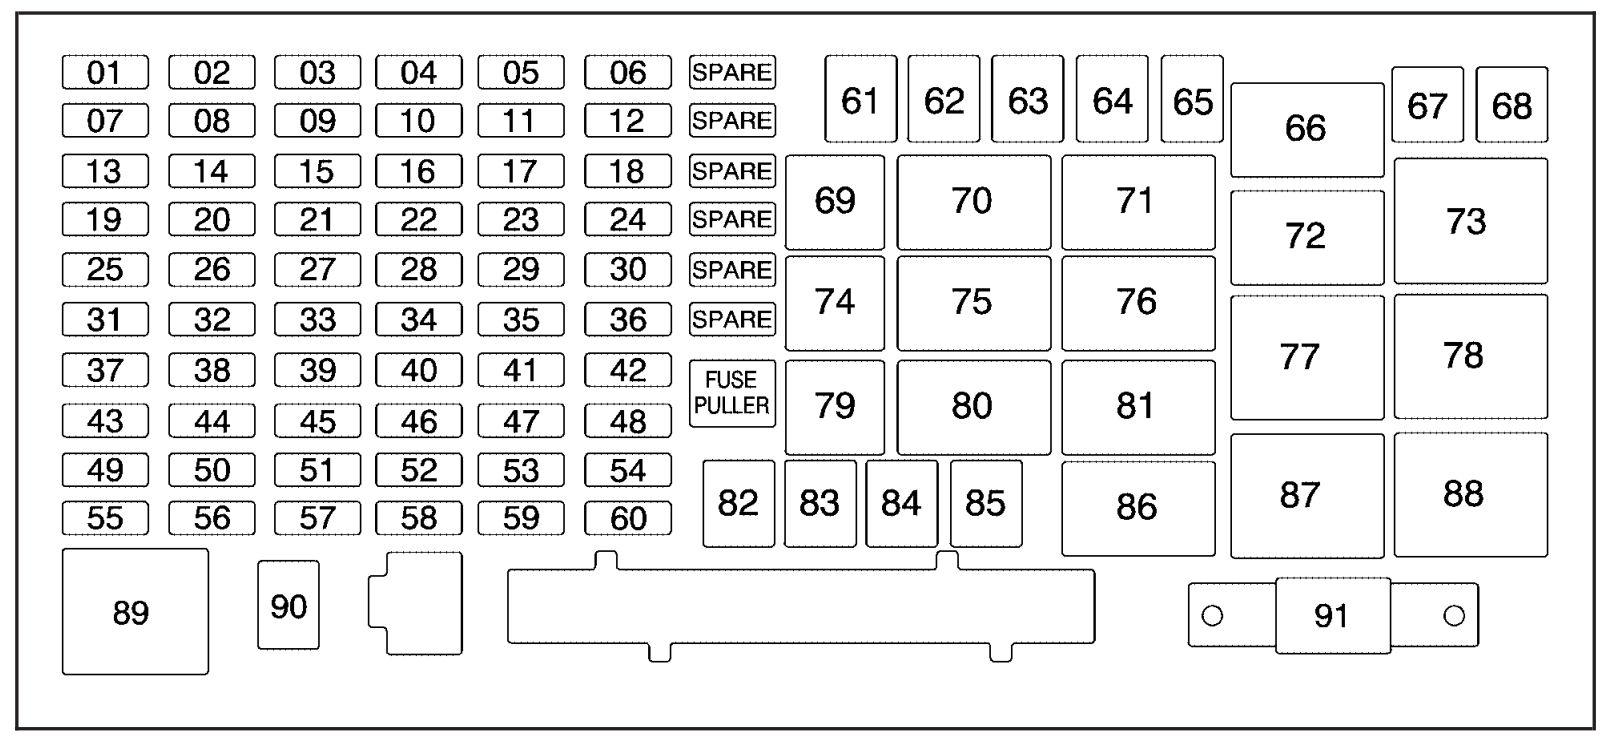 [DIAGRAM_38IS]  2005 Dodge Dakota Fuse Box | Wiring Library | 2005 Dodge Dakota Fuse Panel Diagram |  | 87.esd-handel.eu